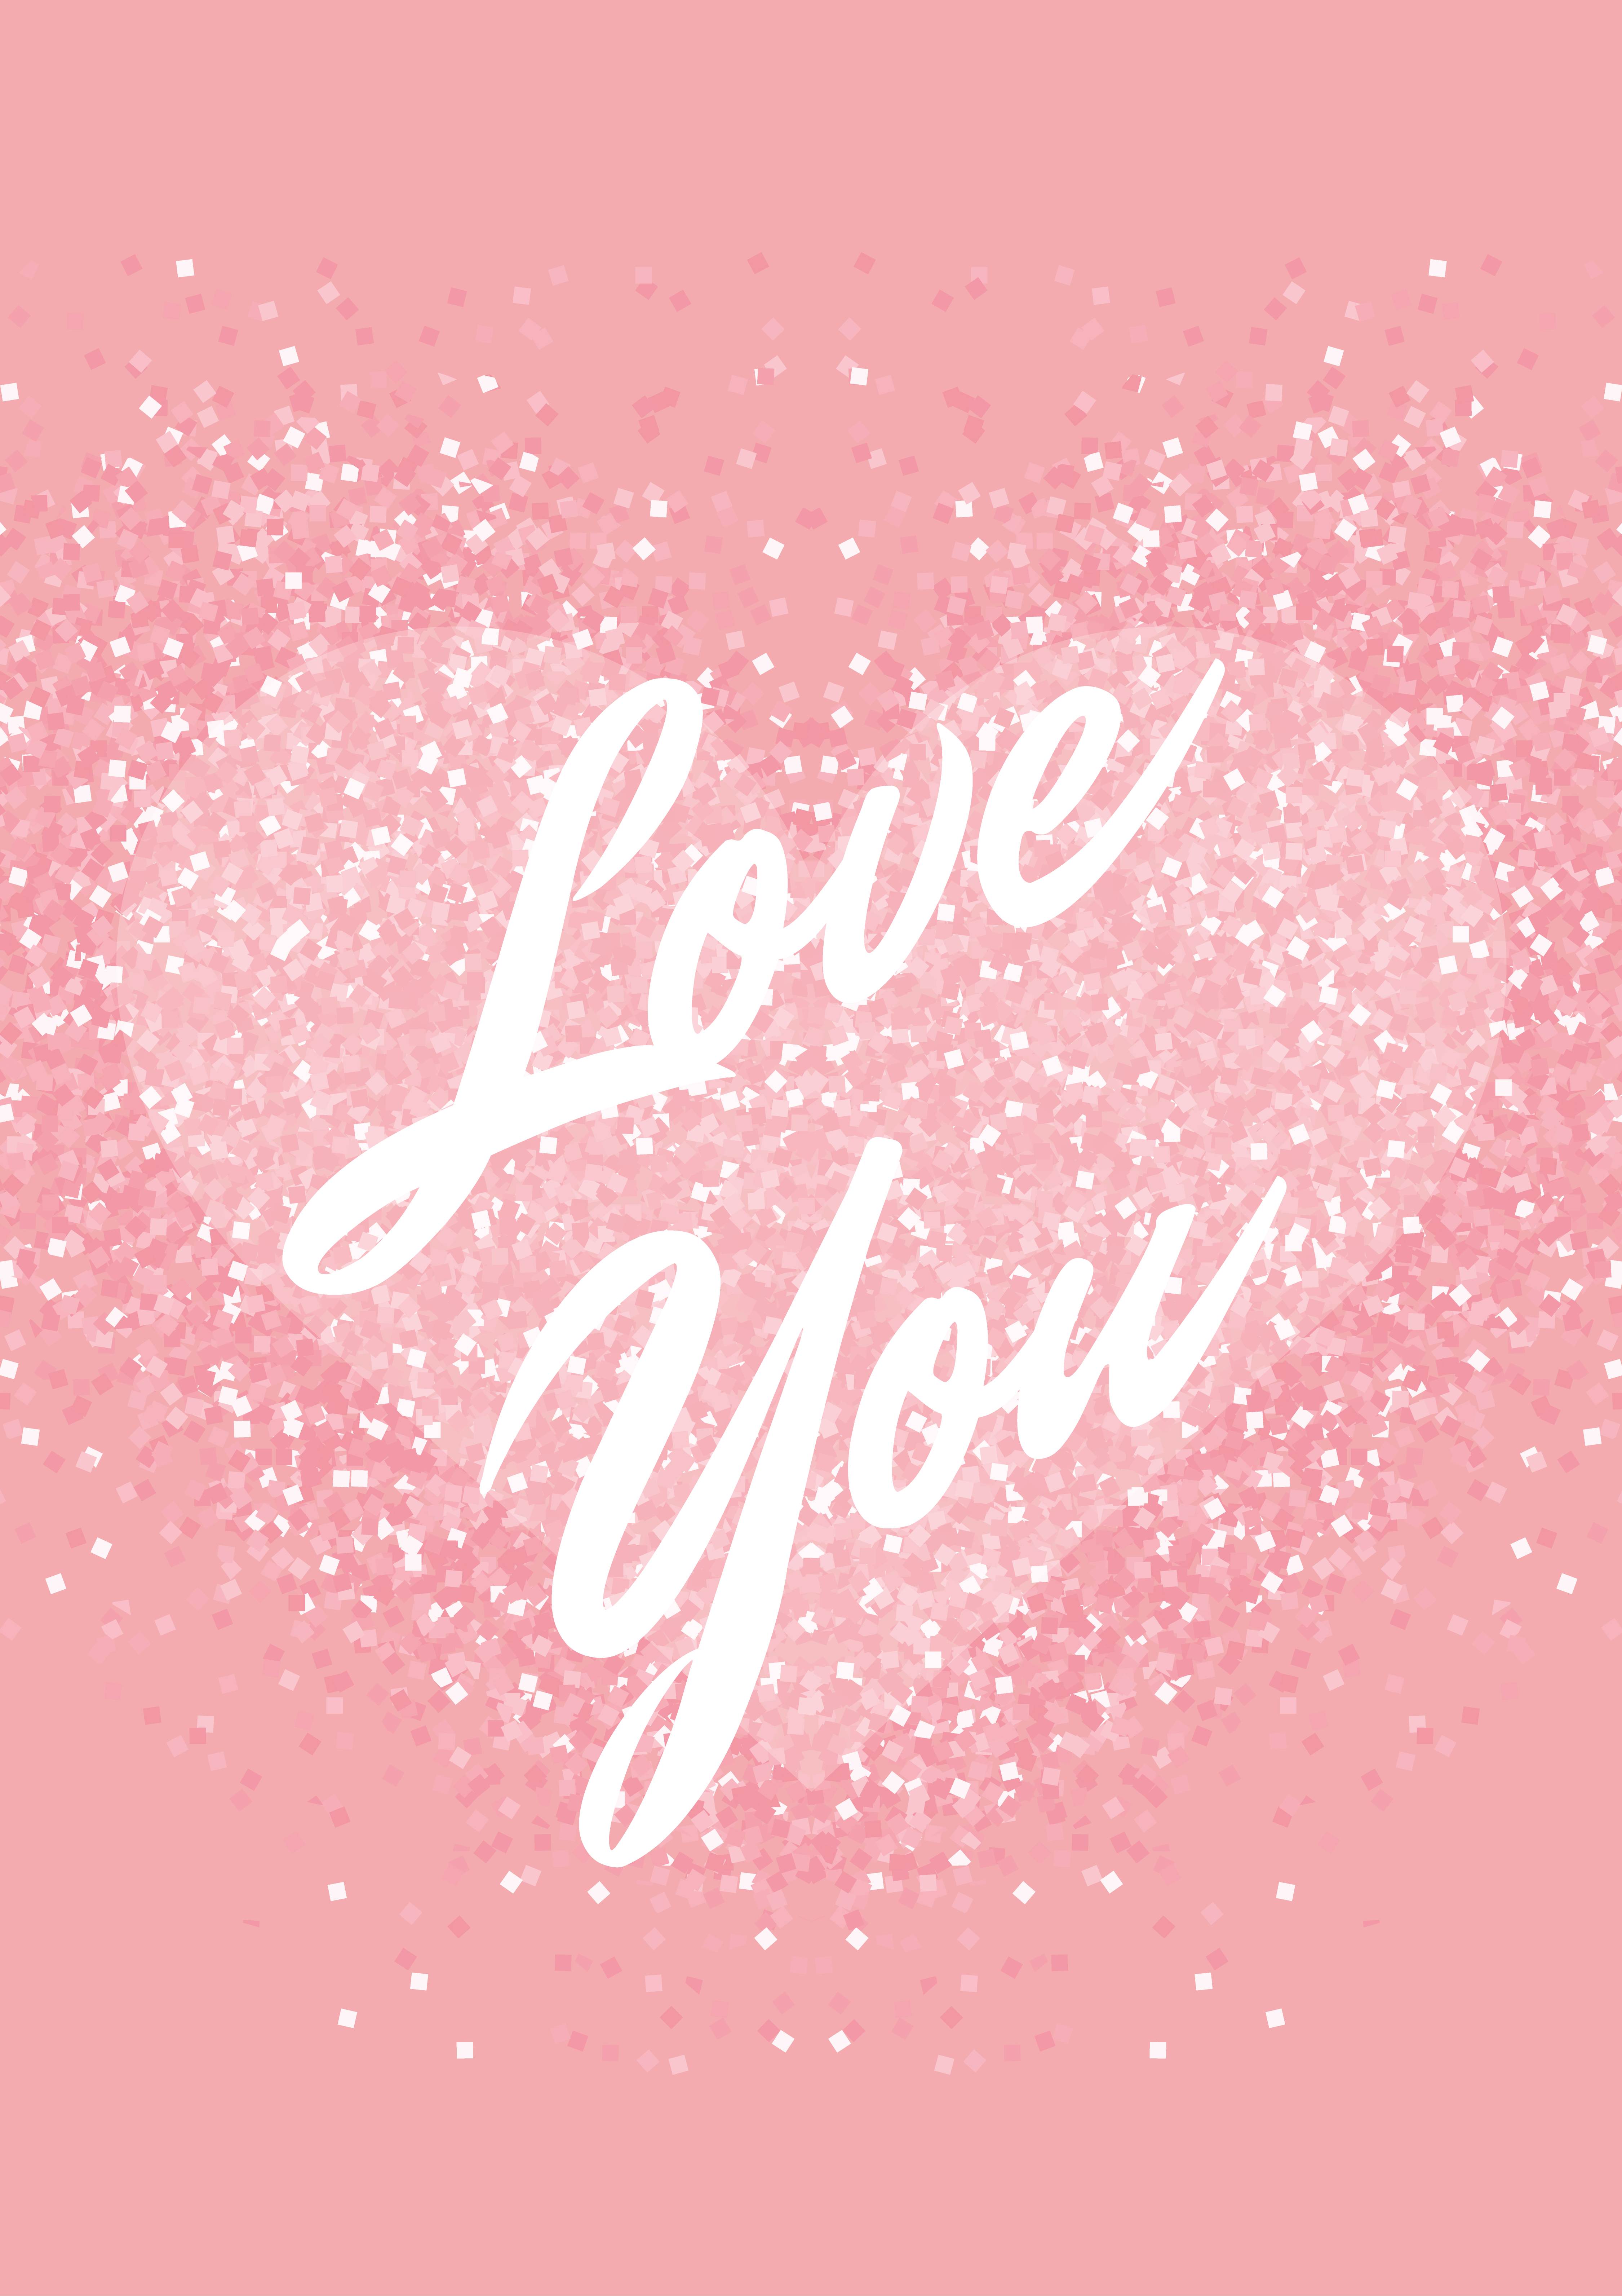 greeting card with pastel pink glitter heart and text